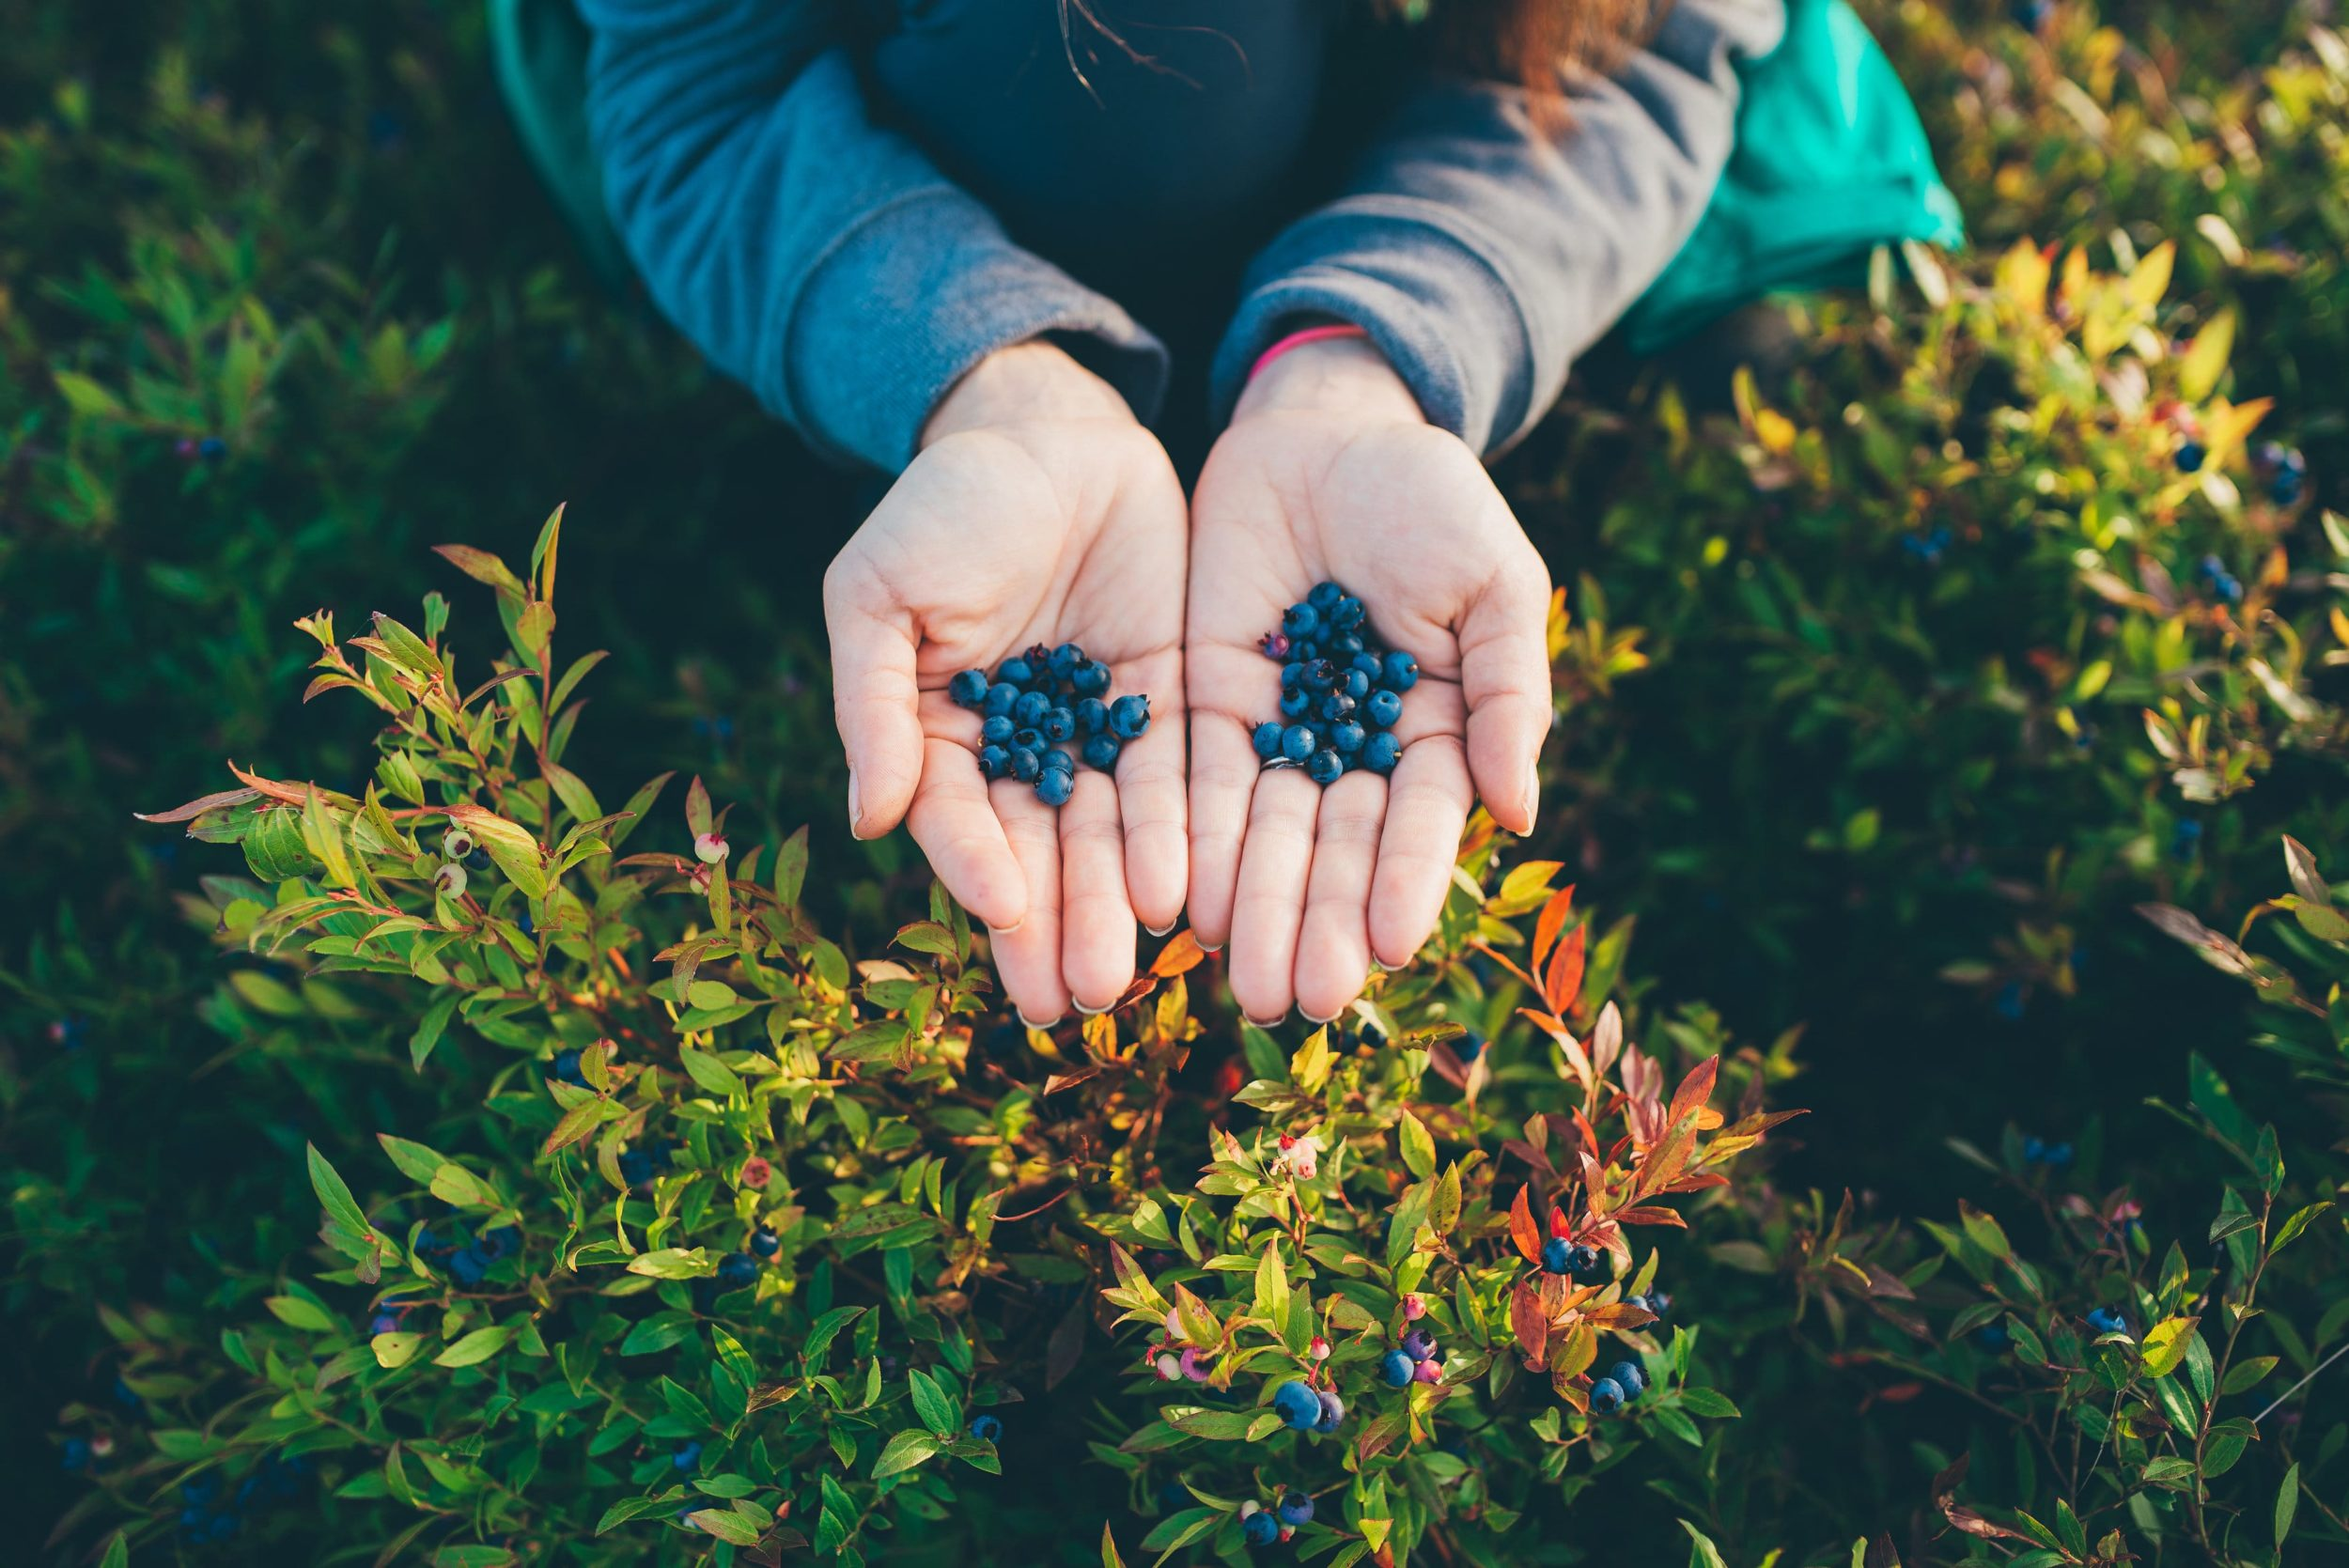 A hand full of blueberries